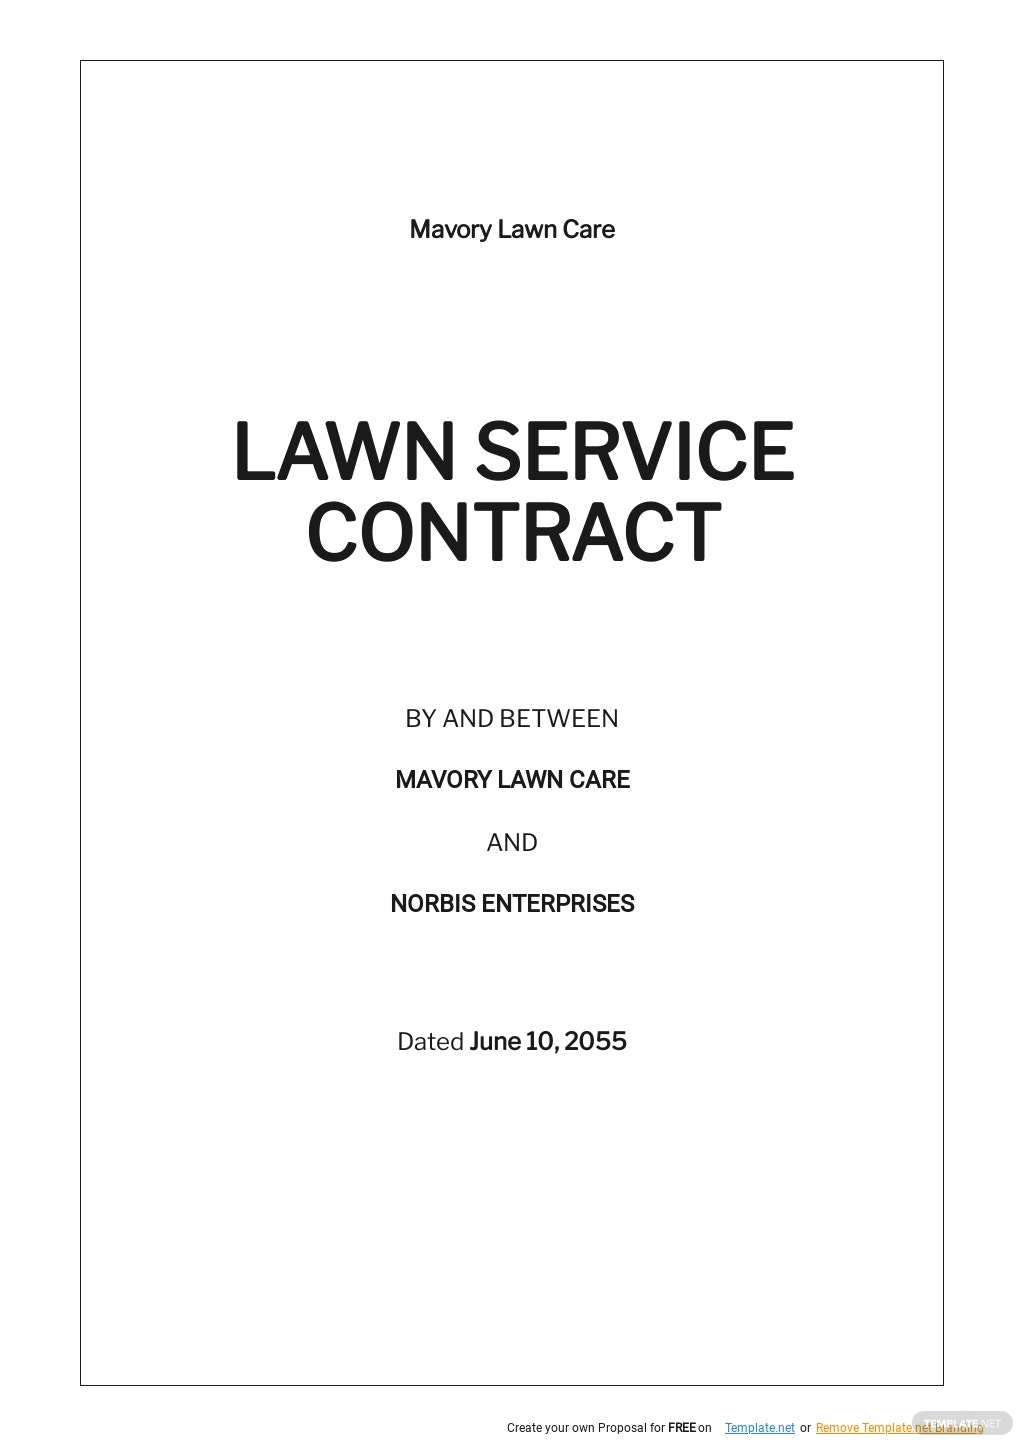 Lawn Service Contract Template.jpe